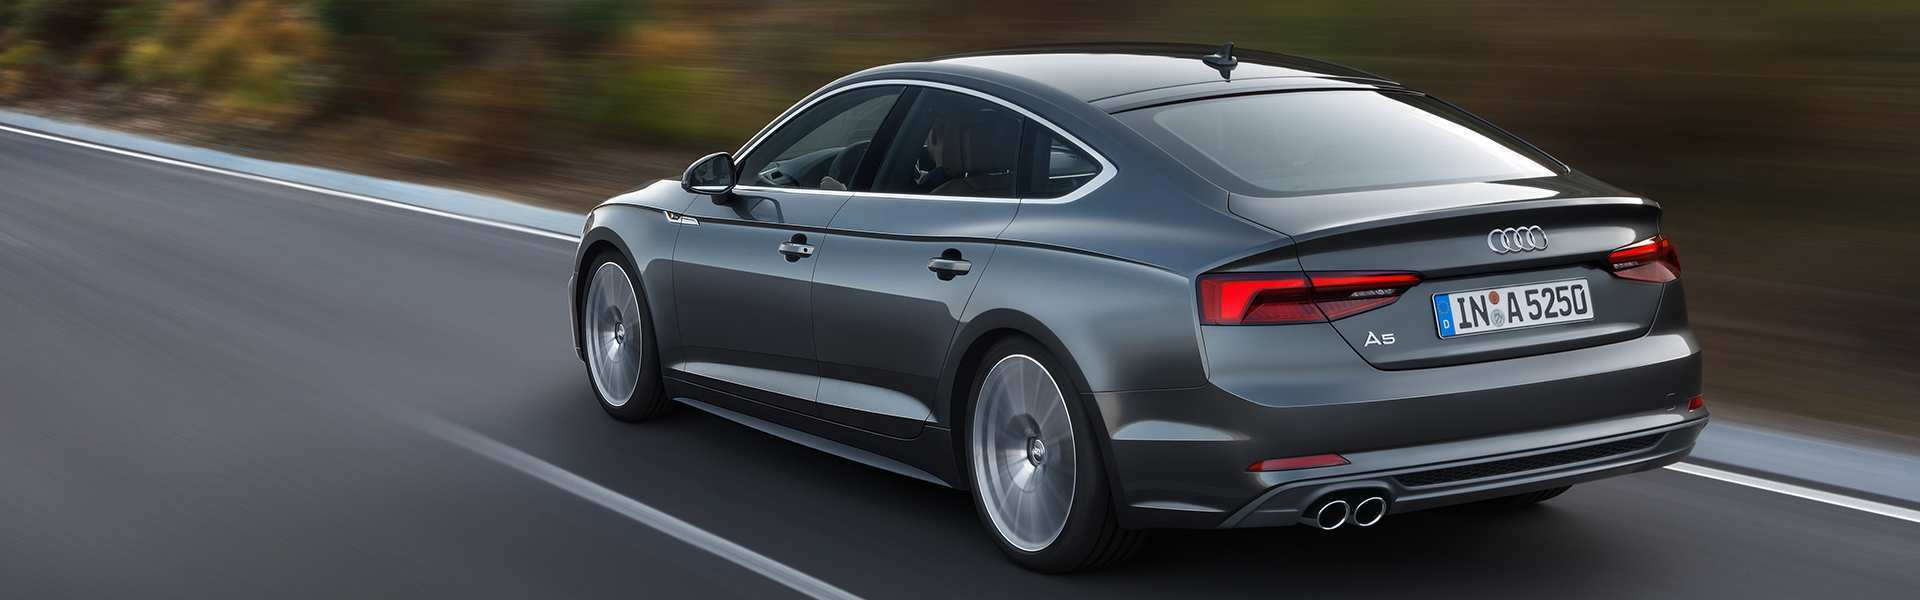 32 Best 2019 Audi A5s Photos